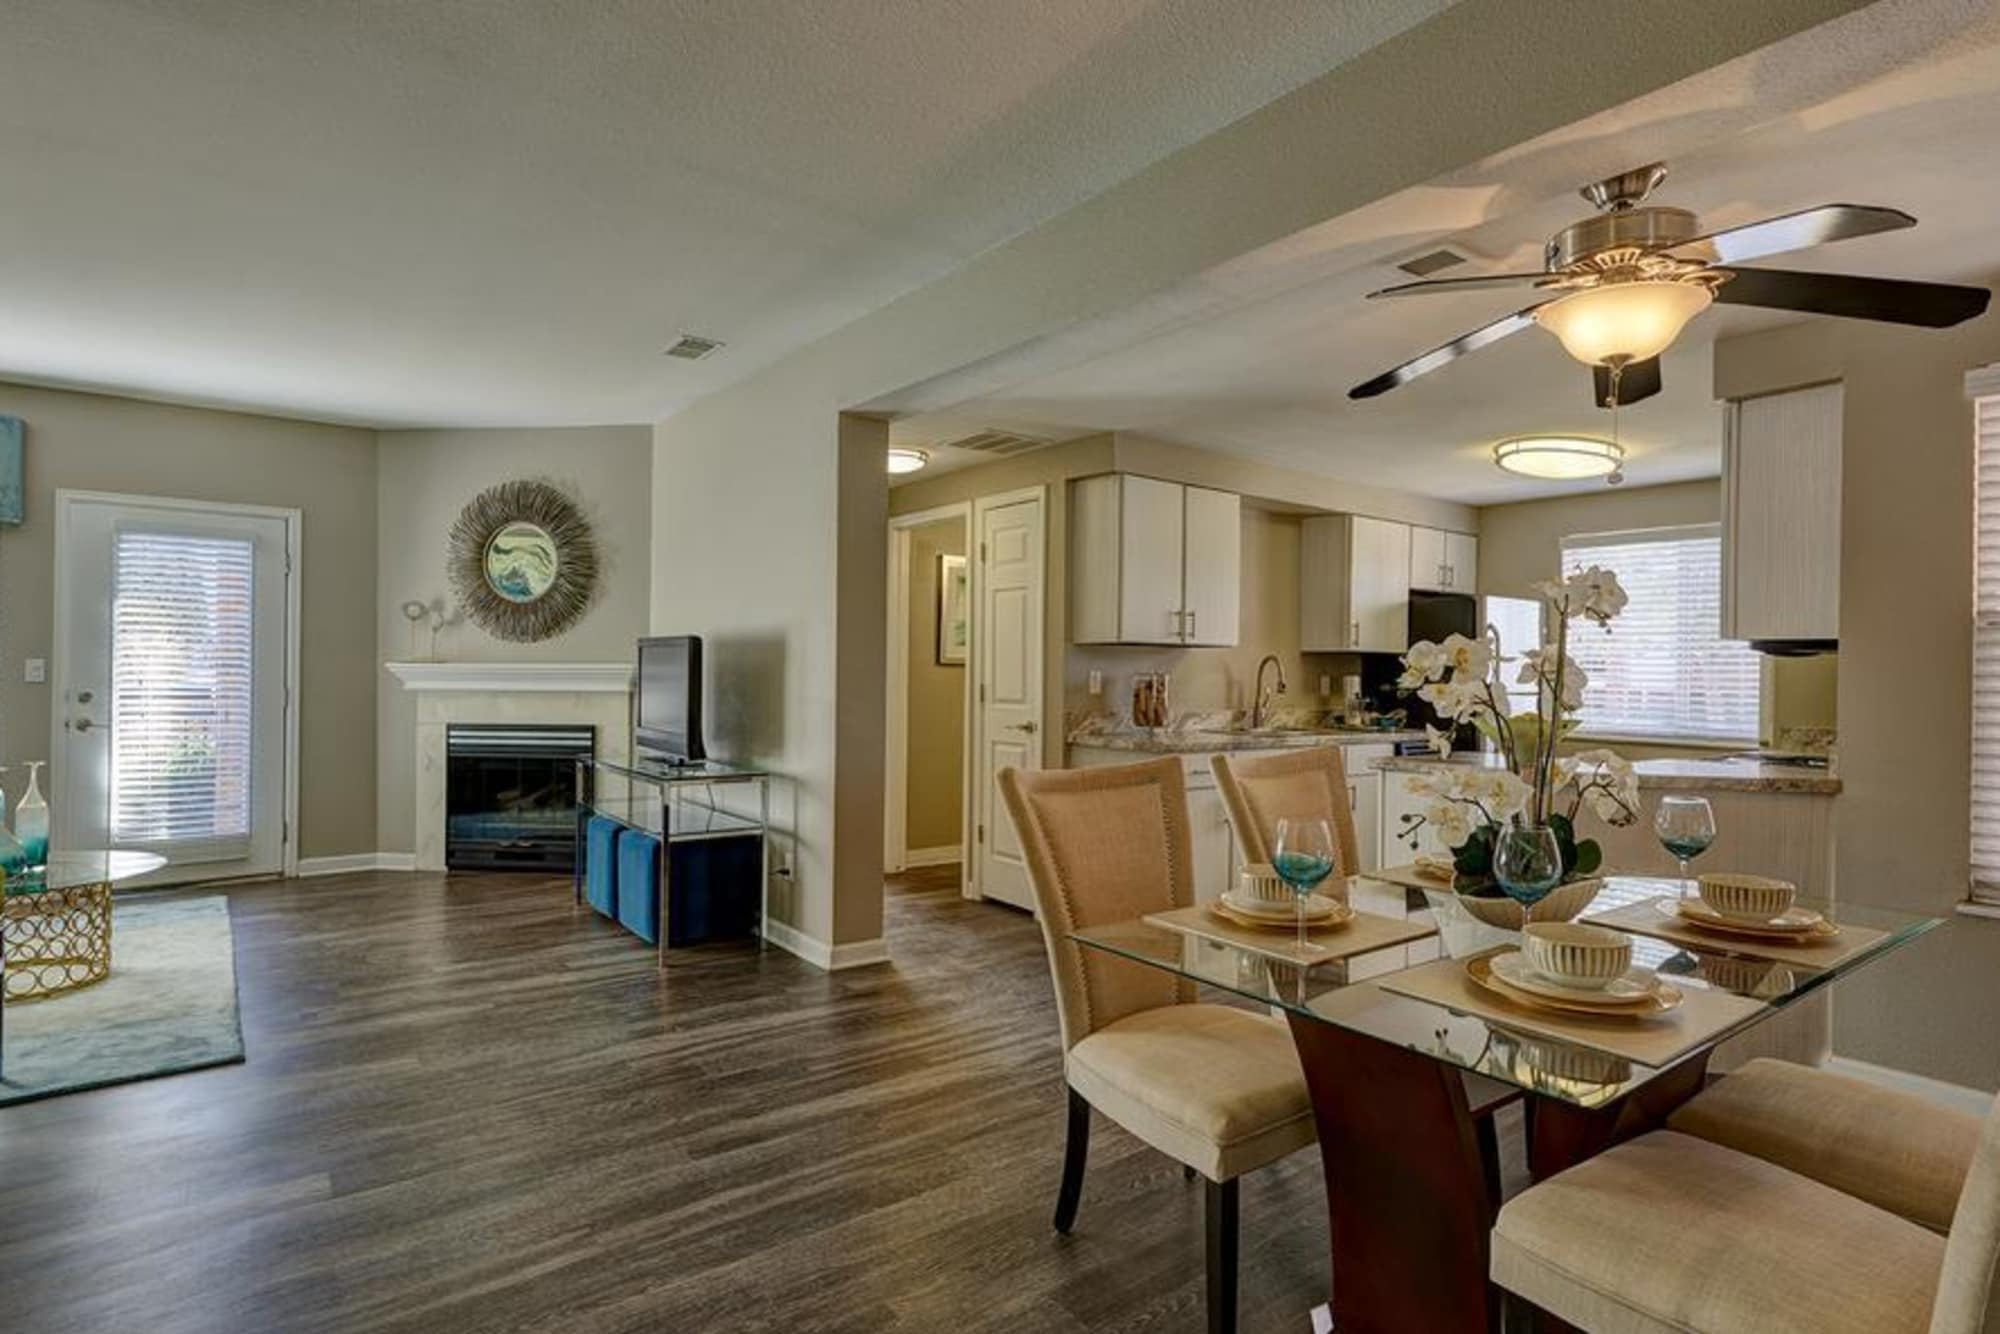 Lounge and Fully Equipped Kitchen and living room with fireplace at Villas at Homestead Apartments